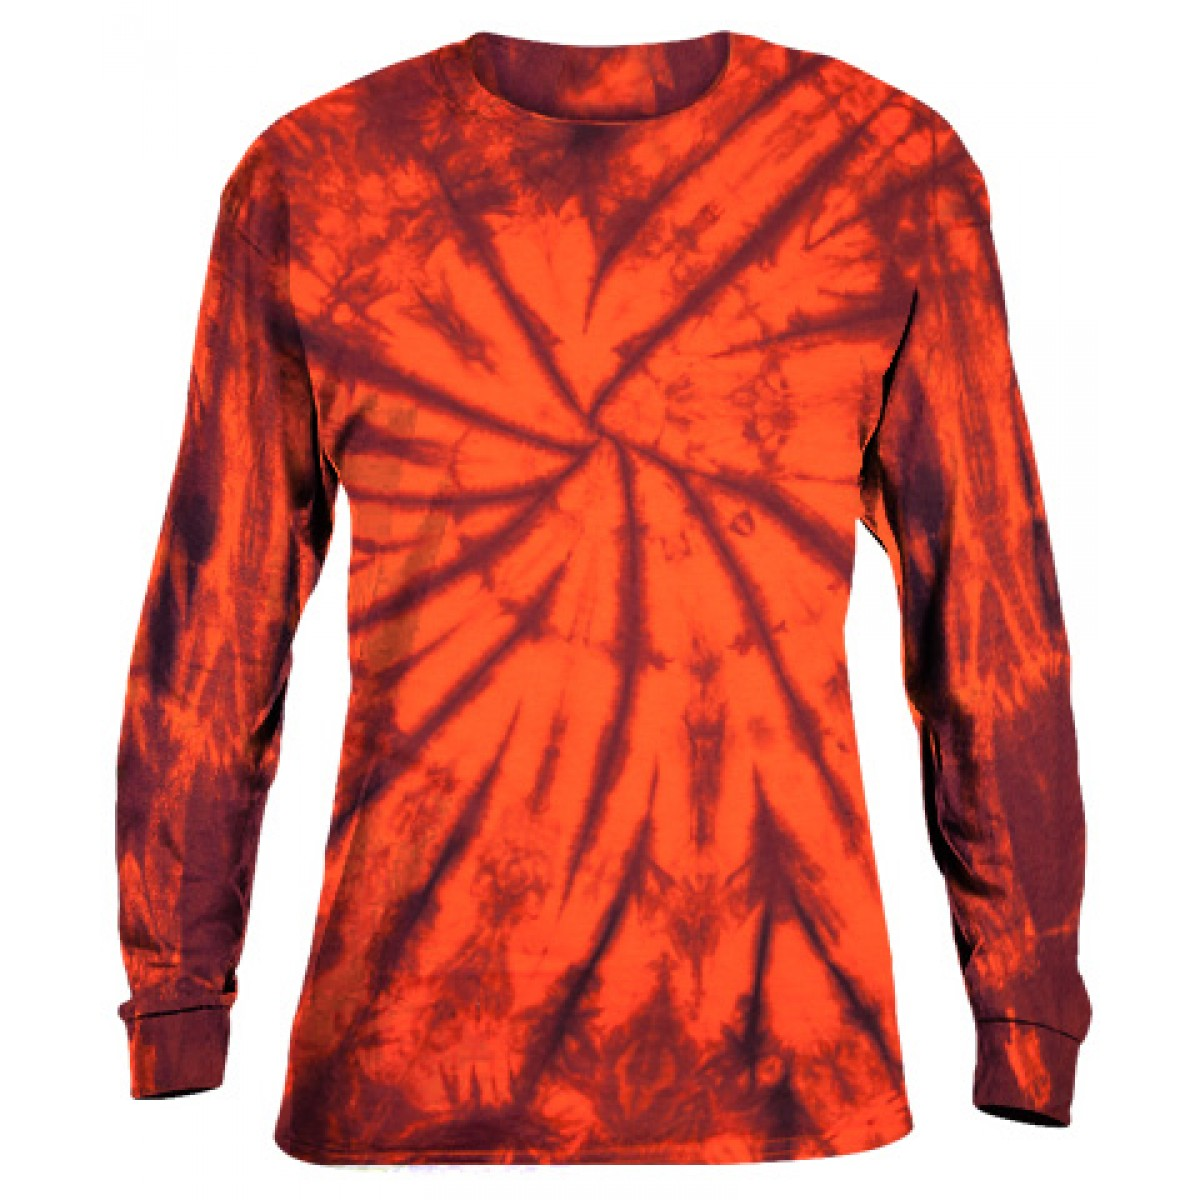 Tie-Dye Long Sleeve Shirt -Fall Orange -M